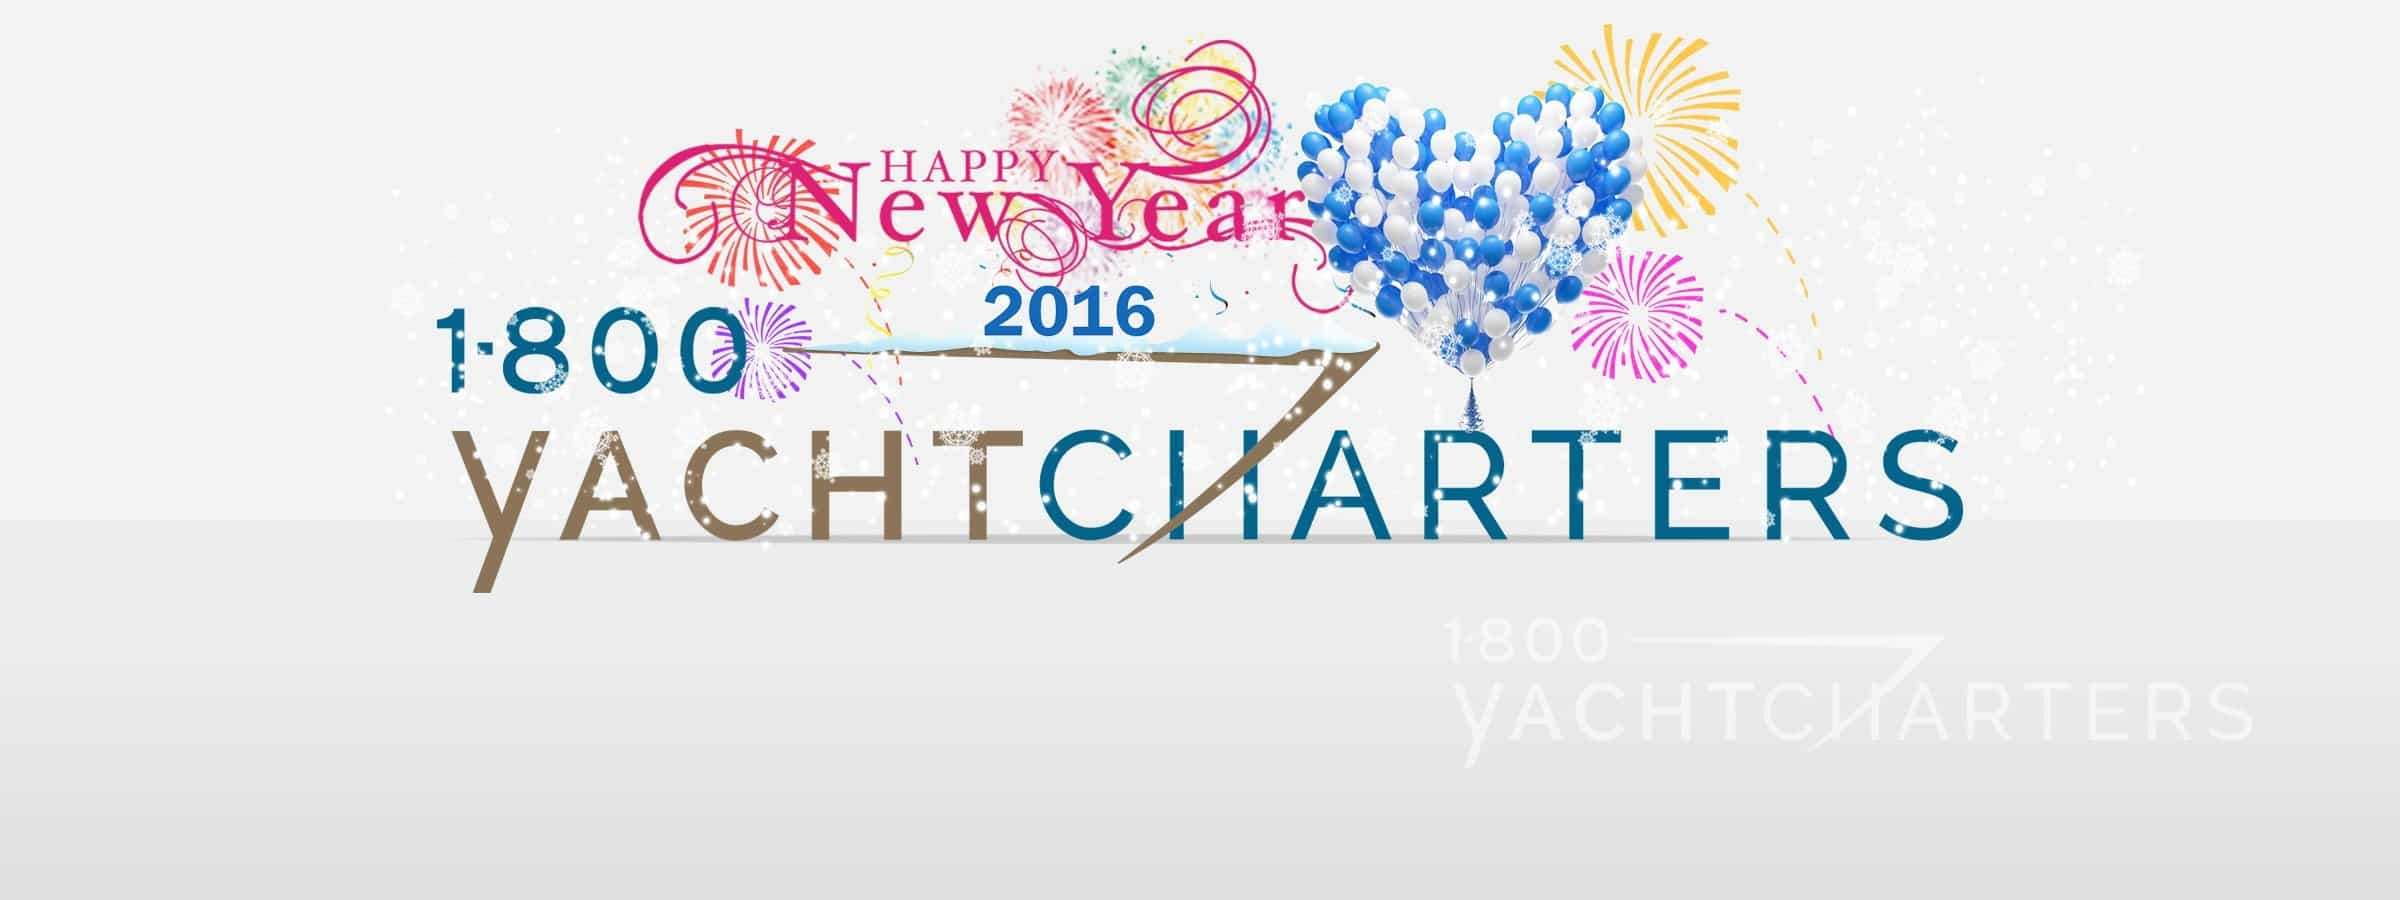 Happy New Year 1800yachtcharters logo